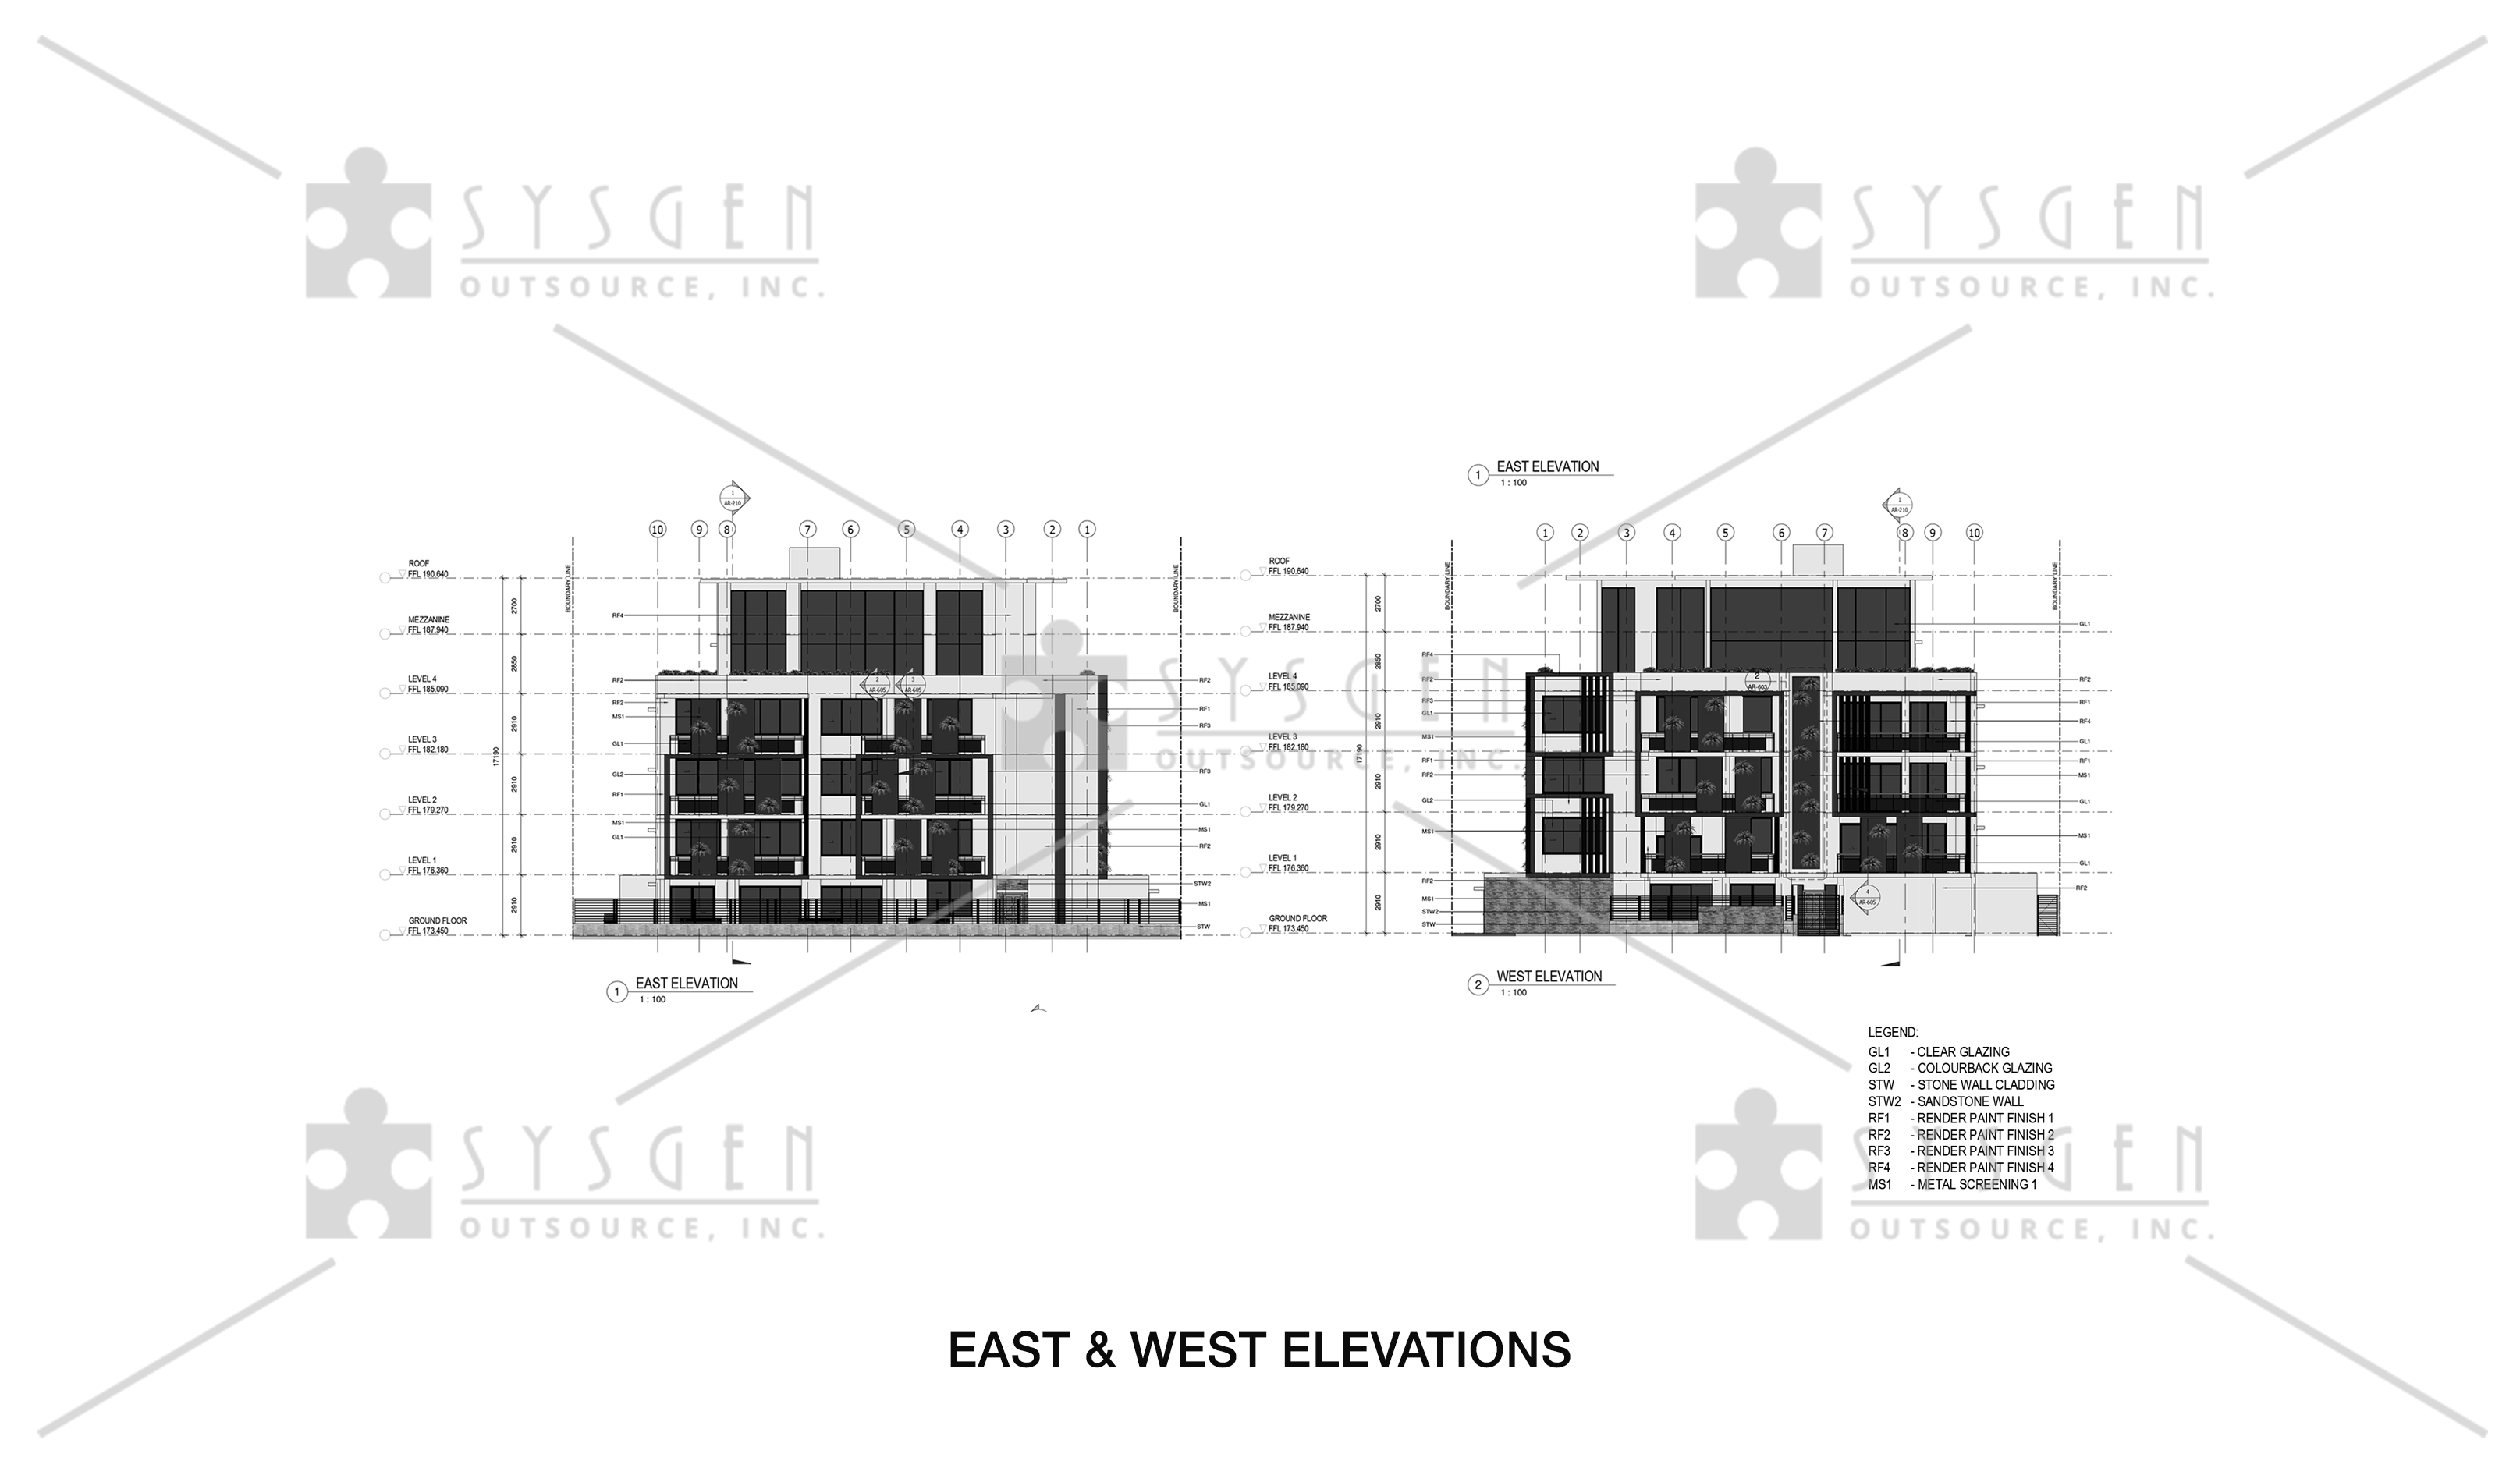 sysgen-outsource-cad-outsourcing-services-cad-conversion-revit-4-storey-residential11